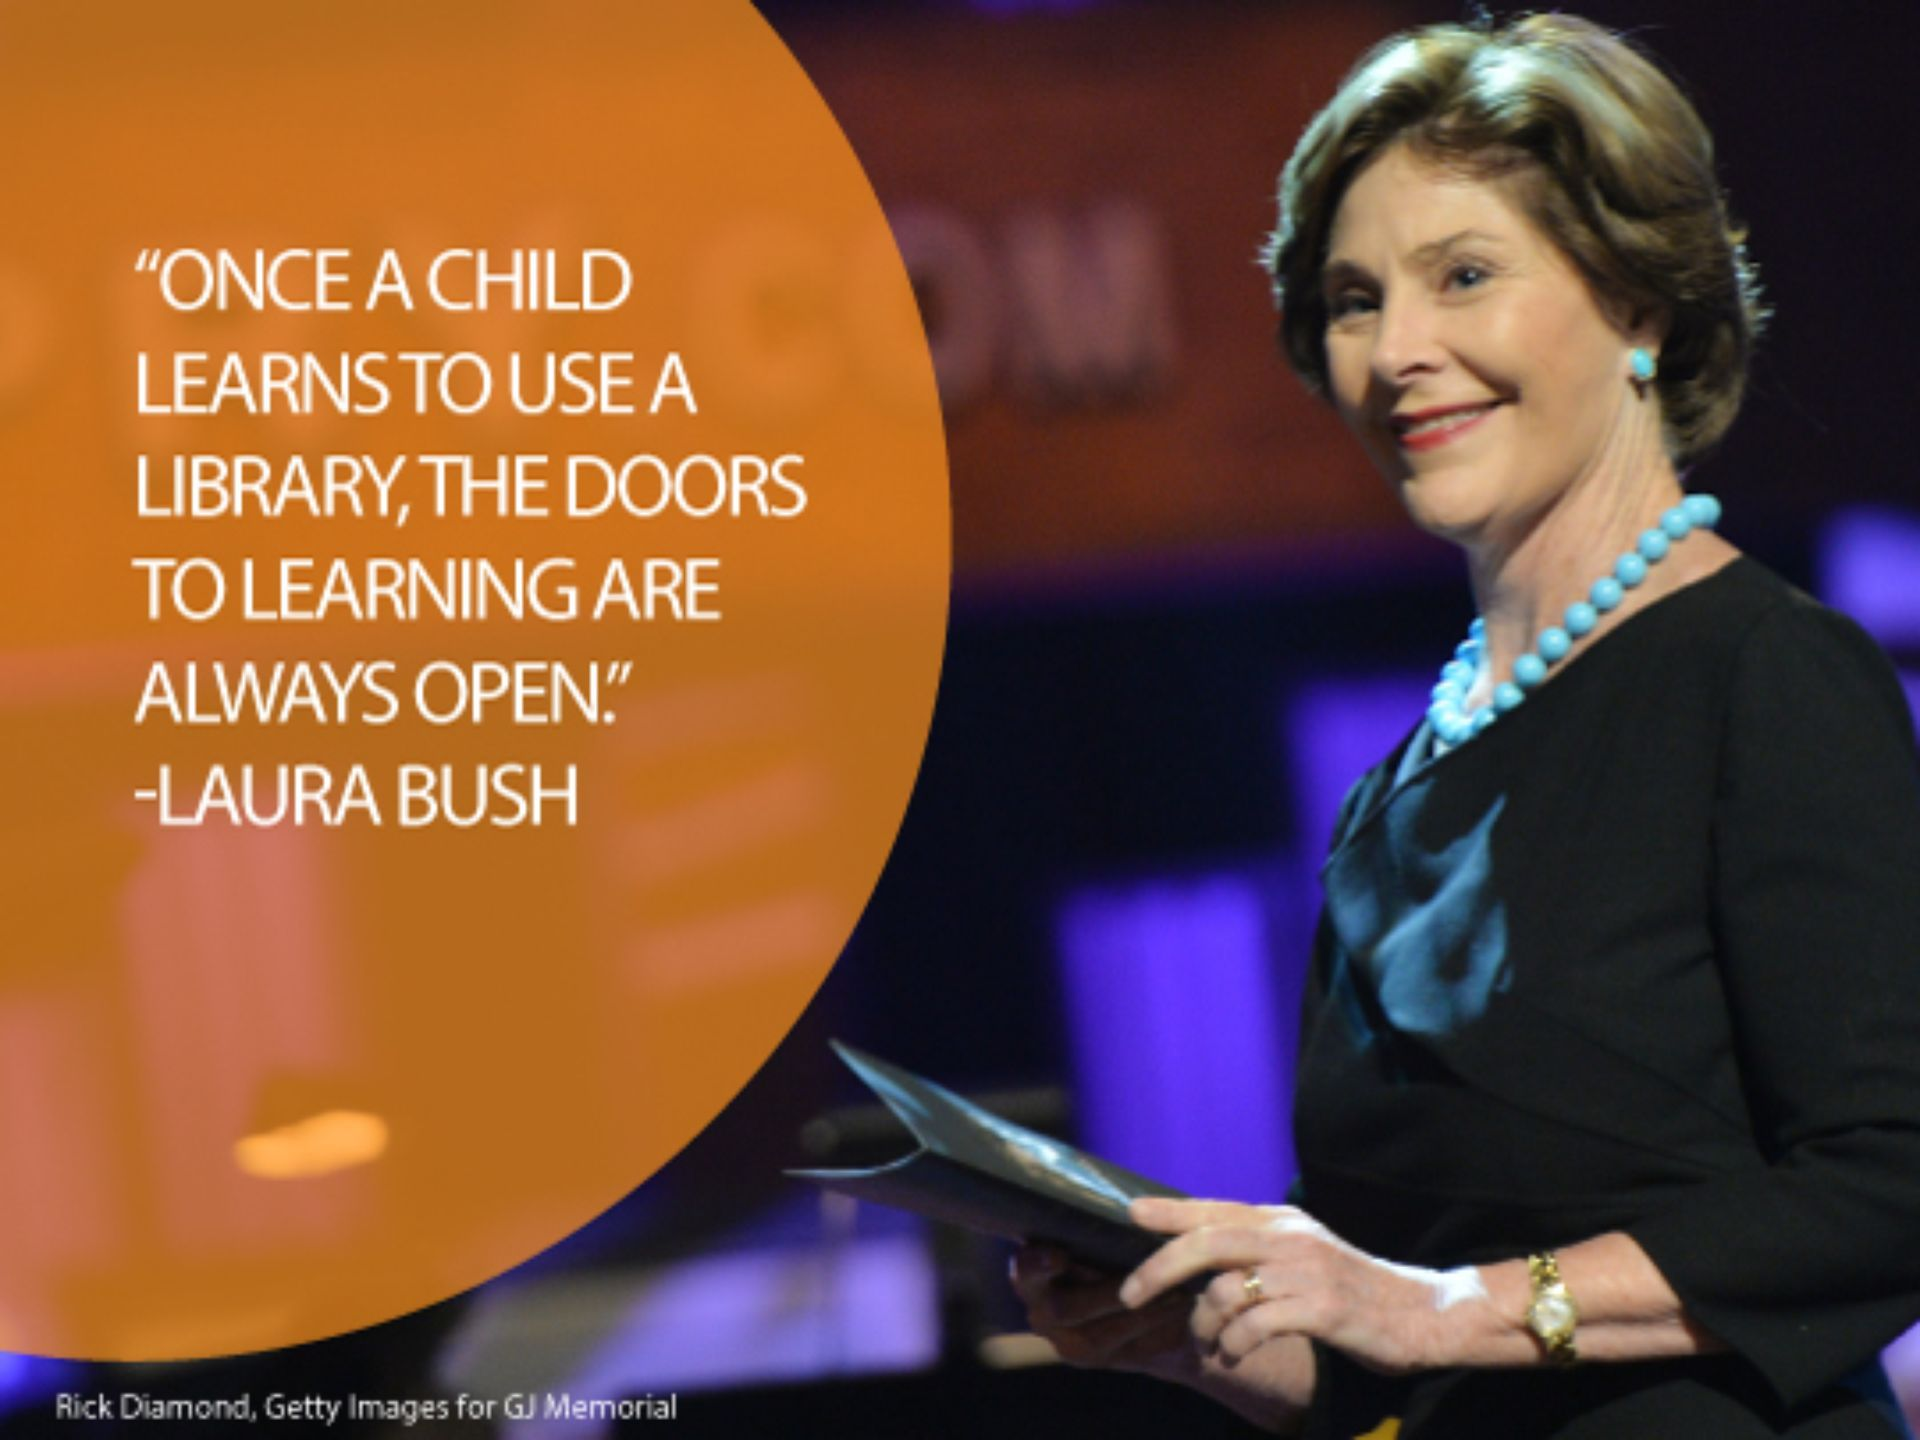 Quotes From Famous American Women Inspirational Quotes For Women Laura Bush Quotes Inspirational Quotes